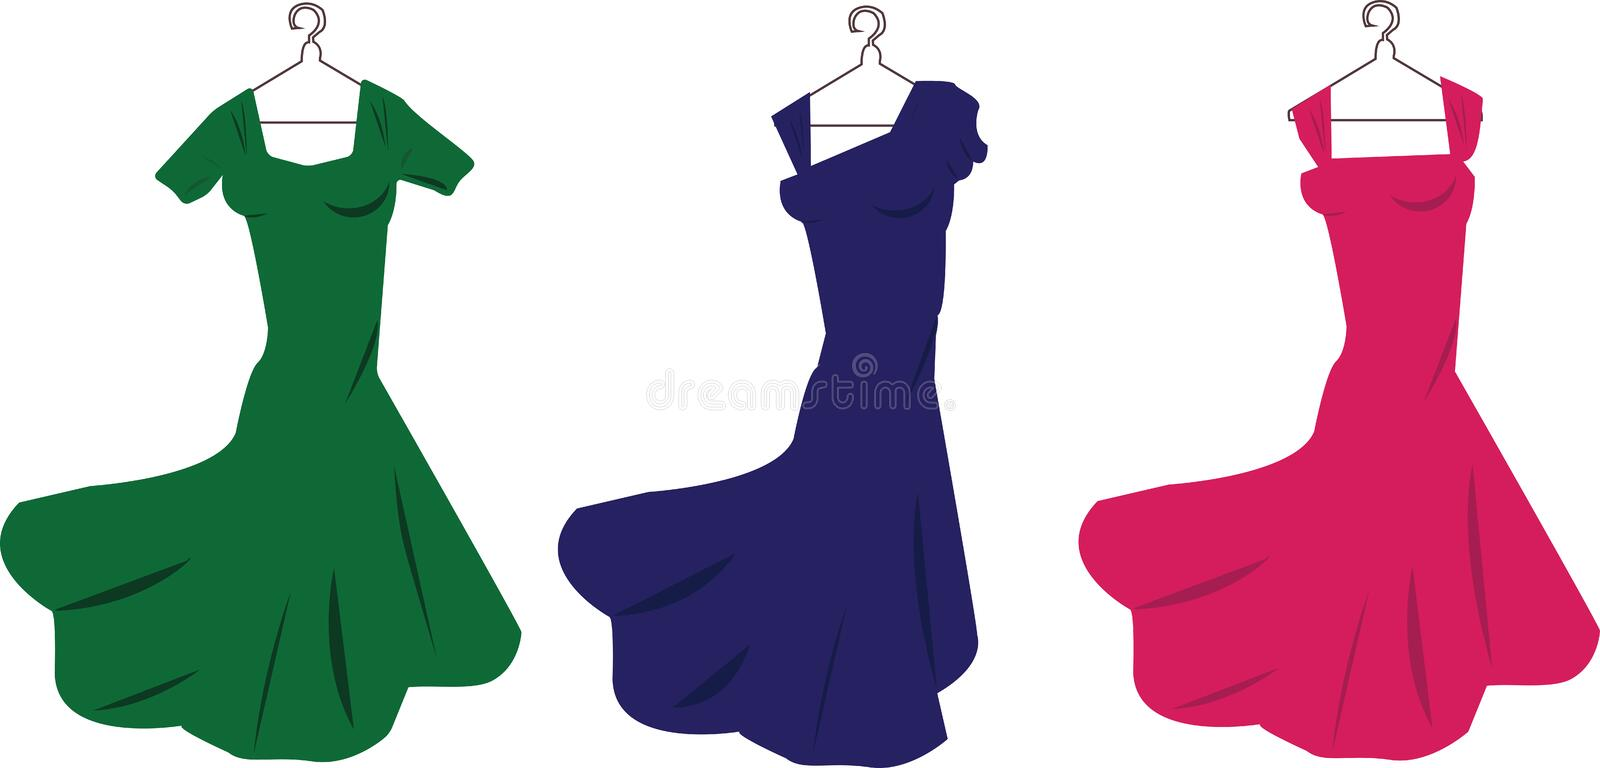 Robes illustration stock